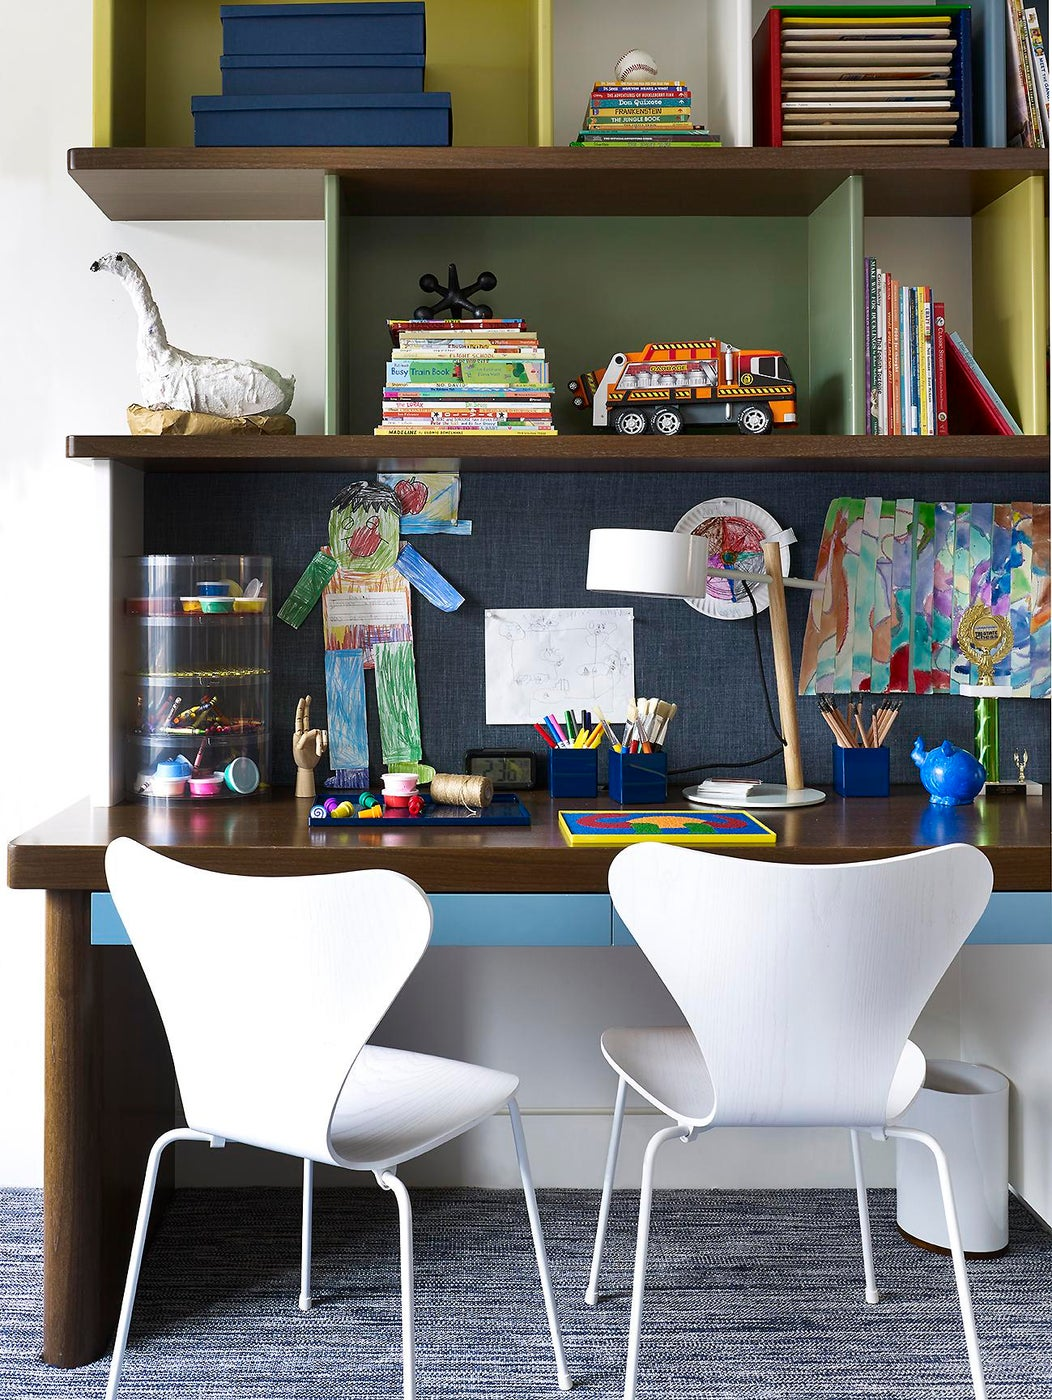 Custom kid's room desk with colorful lacquer built-ins and mid-century details.